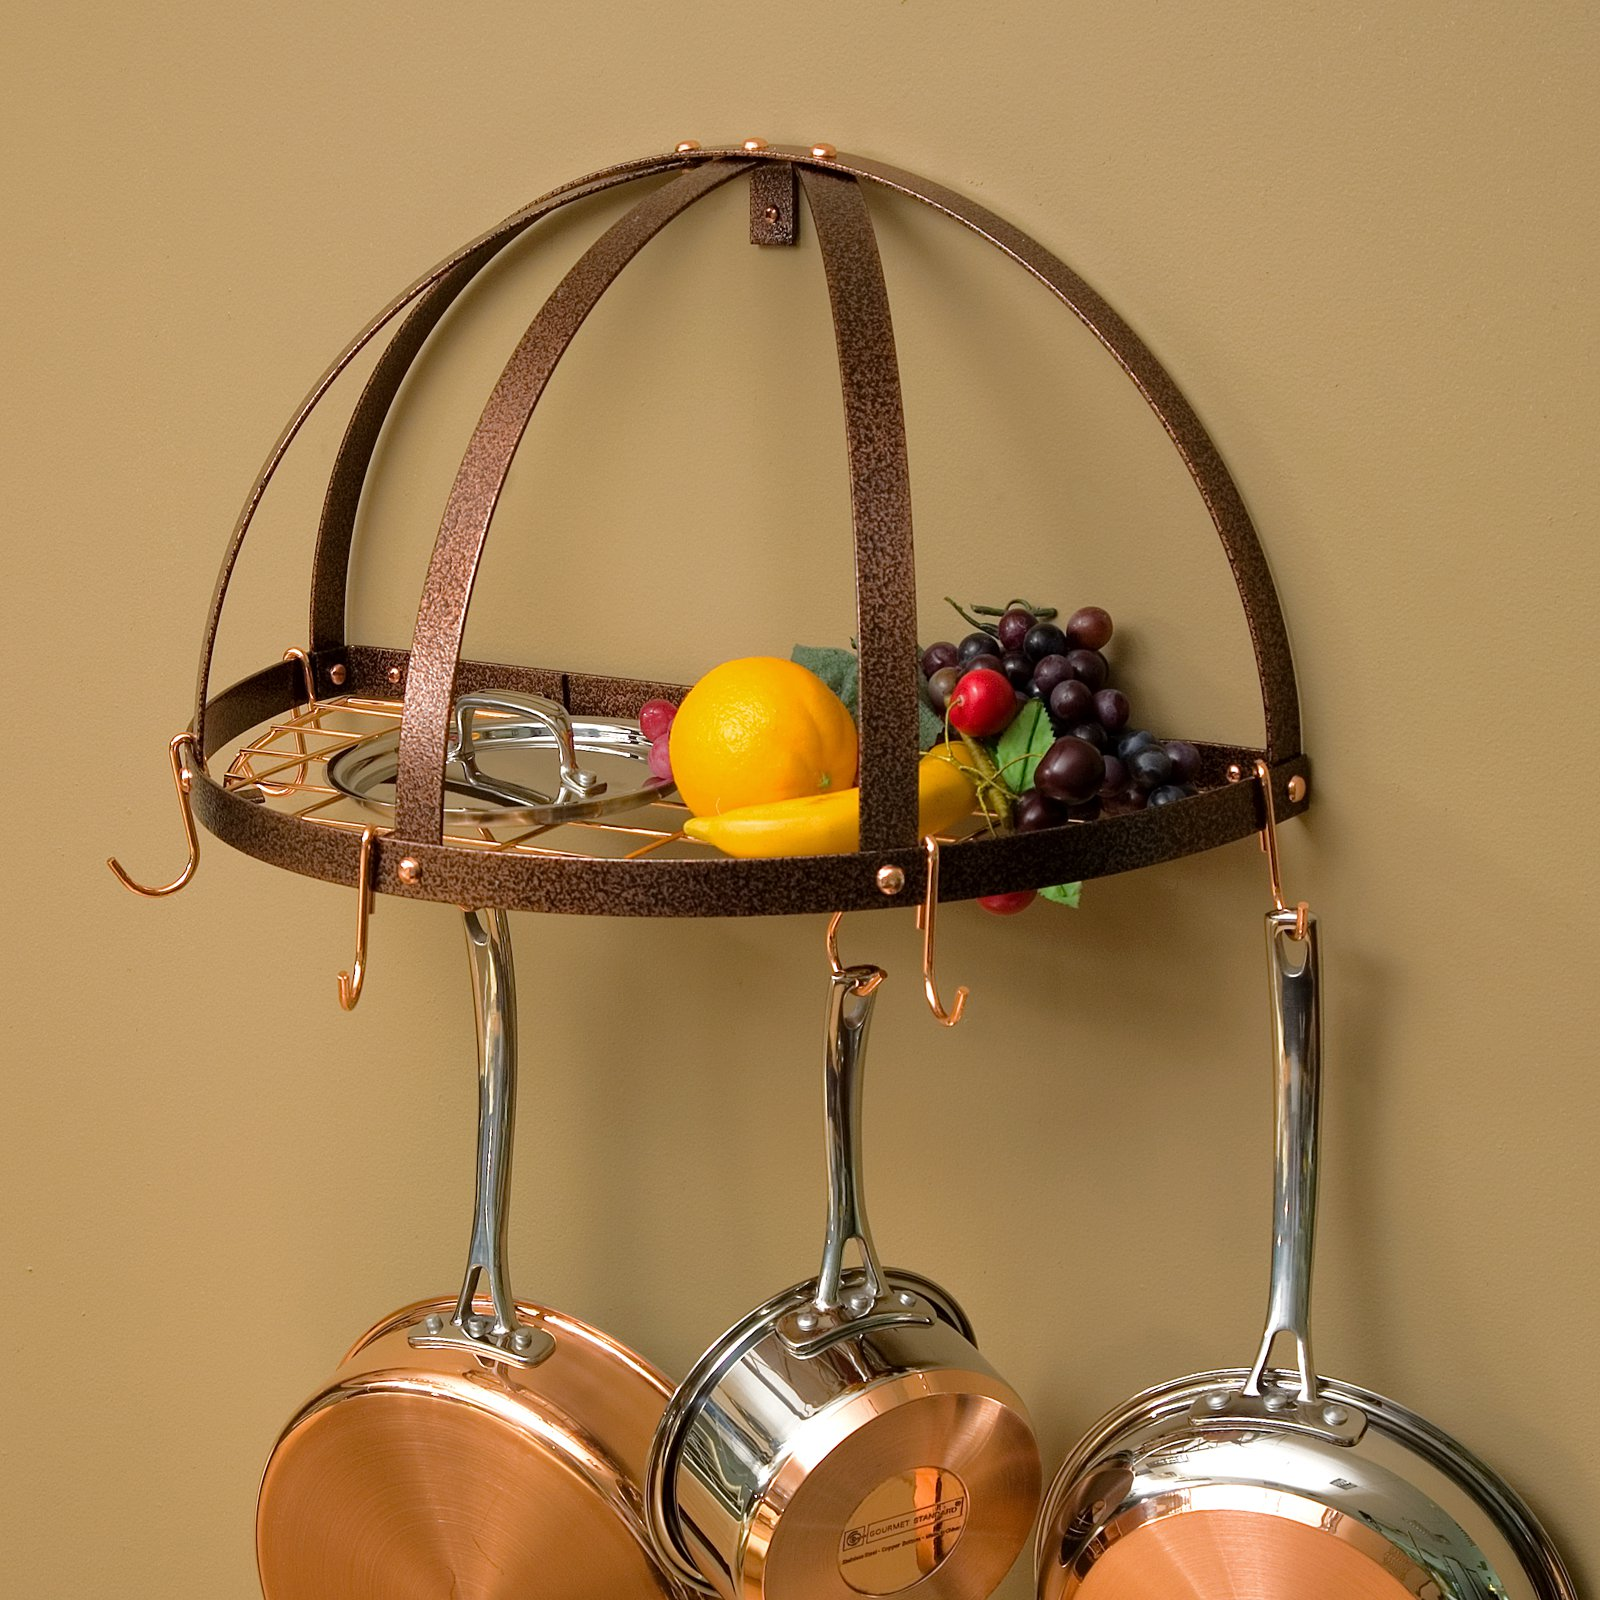 The Gourmet Half Dome Pot Rack with Grid